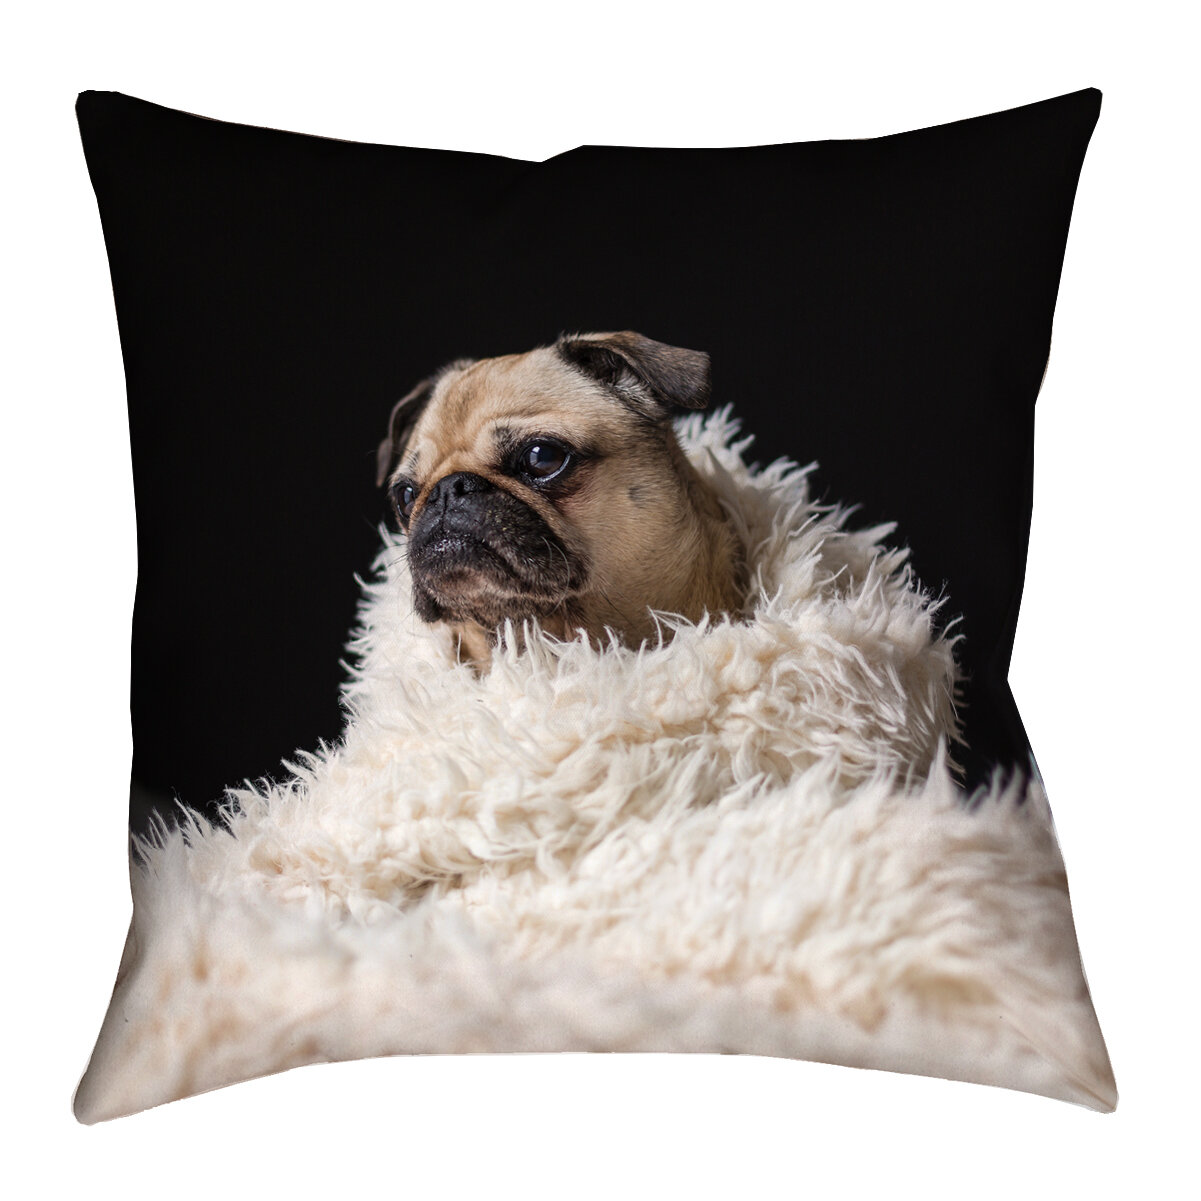 Latitude Run Karlos Pug In Blanket Throw Pillow With Zipper Wayfair